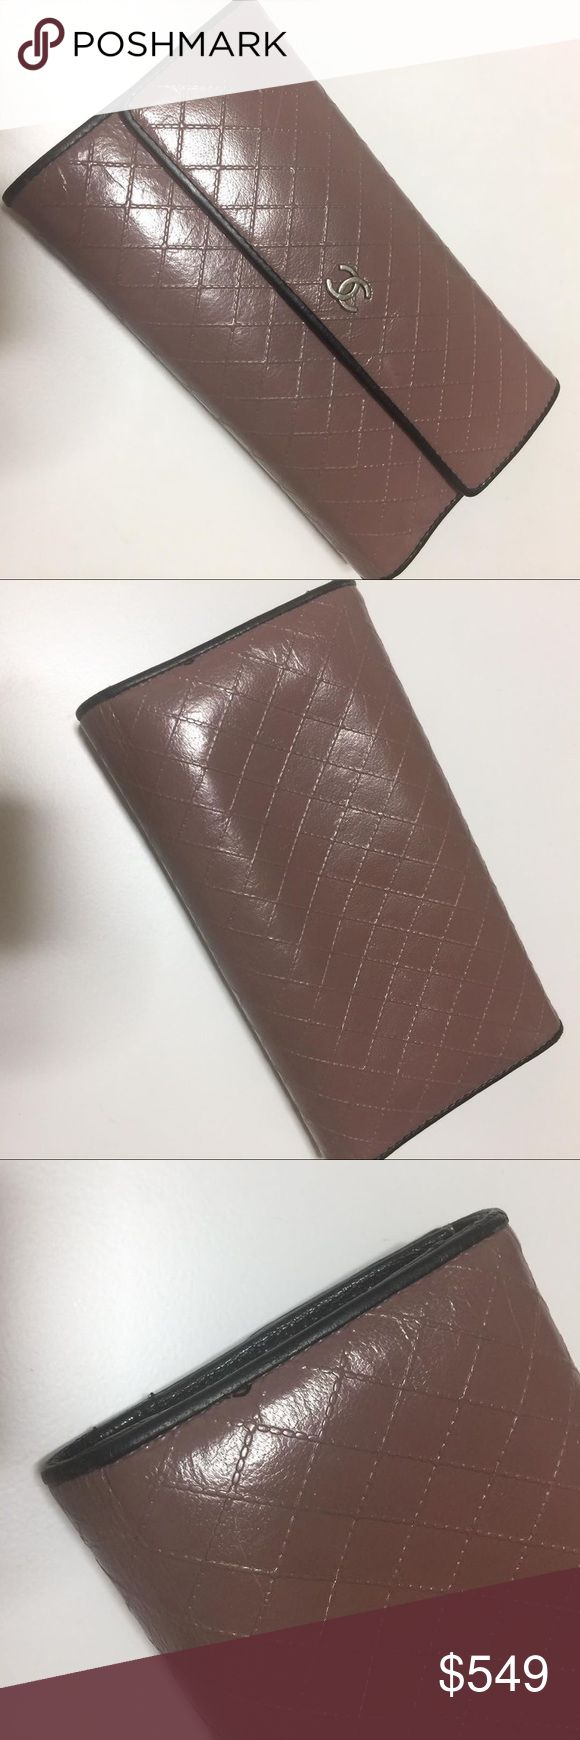 CHANEL BICOLOR TRIFOLD LONG WALLET Beautiful preowned wallet. Dusty pink with black piping. Diamond quilt. Good condition. Tiny stain on back. Authenticity card included. Price is final. Videos of most items can be seen on instagram: @theluxurylocker CHANEL Bags Wallets